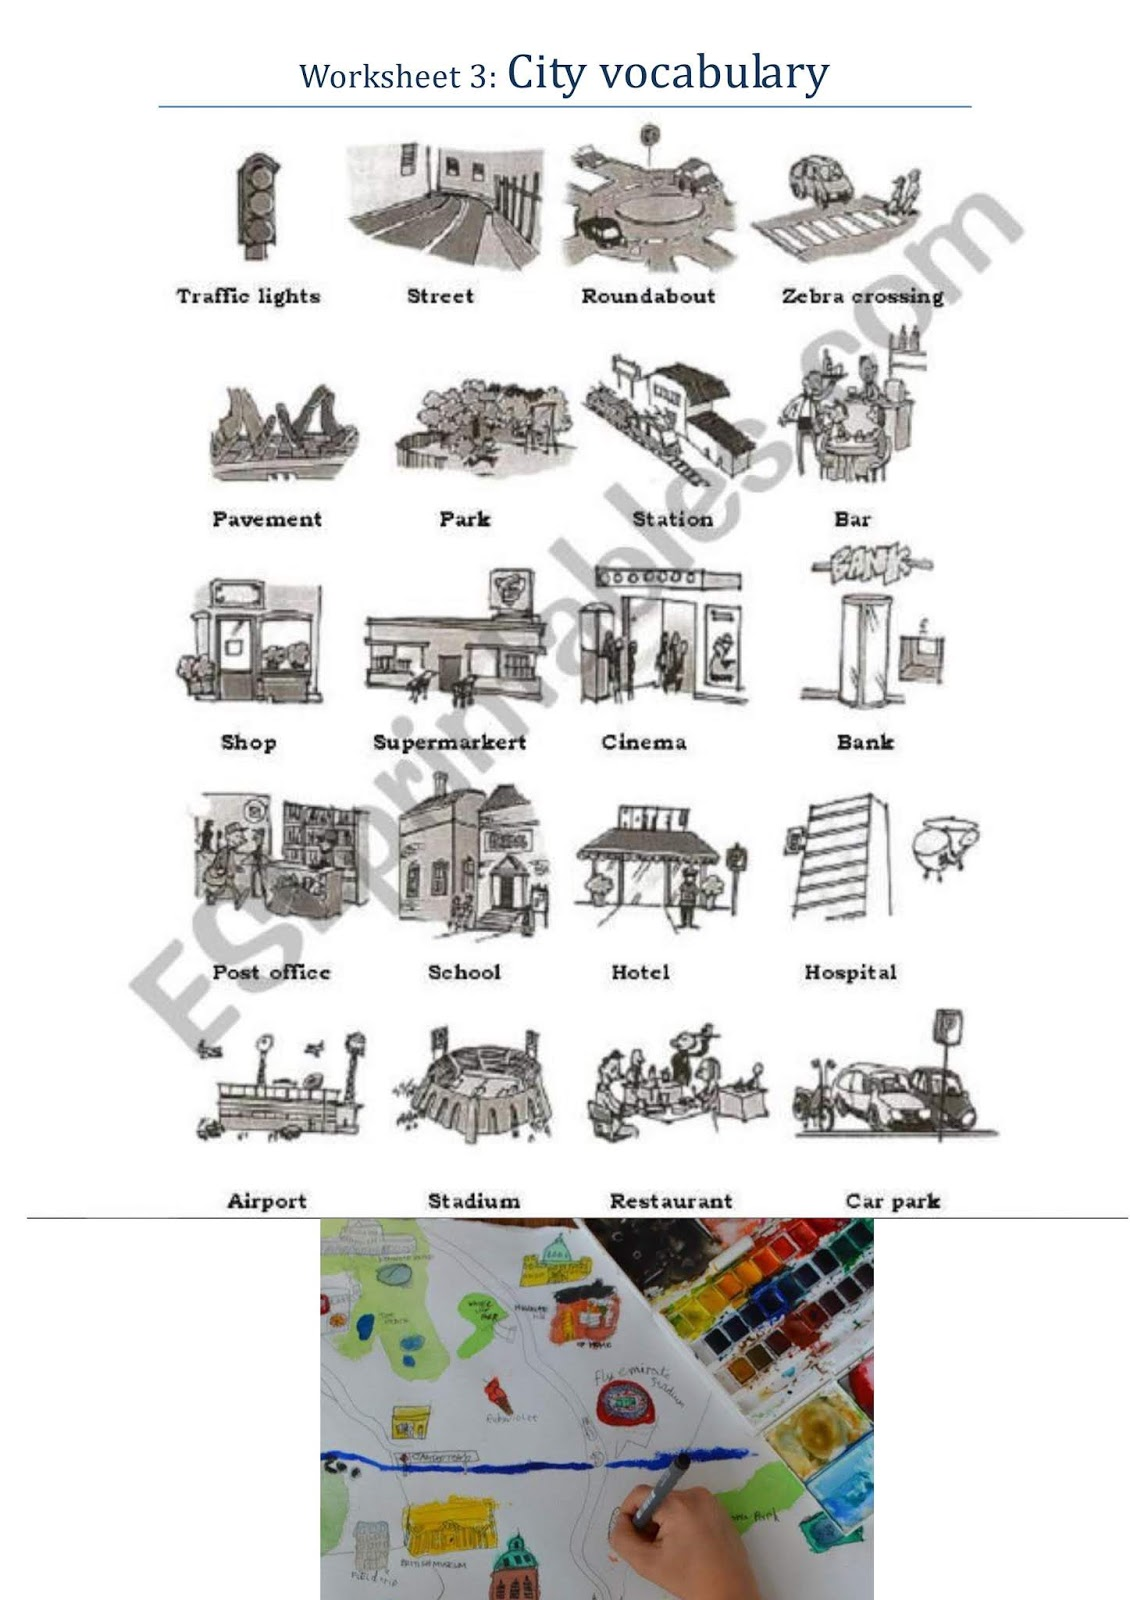 English At Ceip Portmany 6th My City Map Worksheet 3